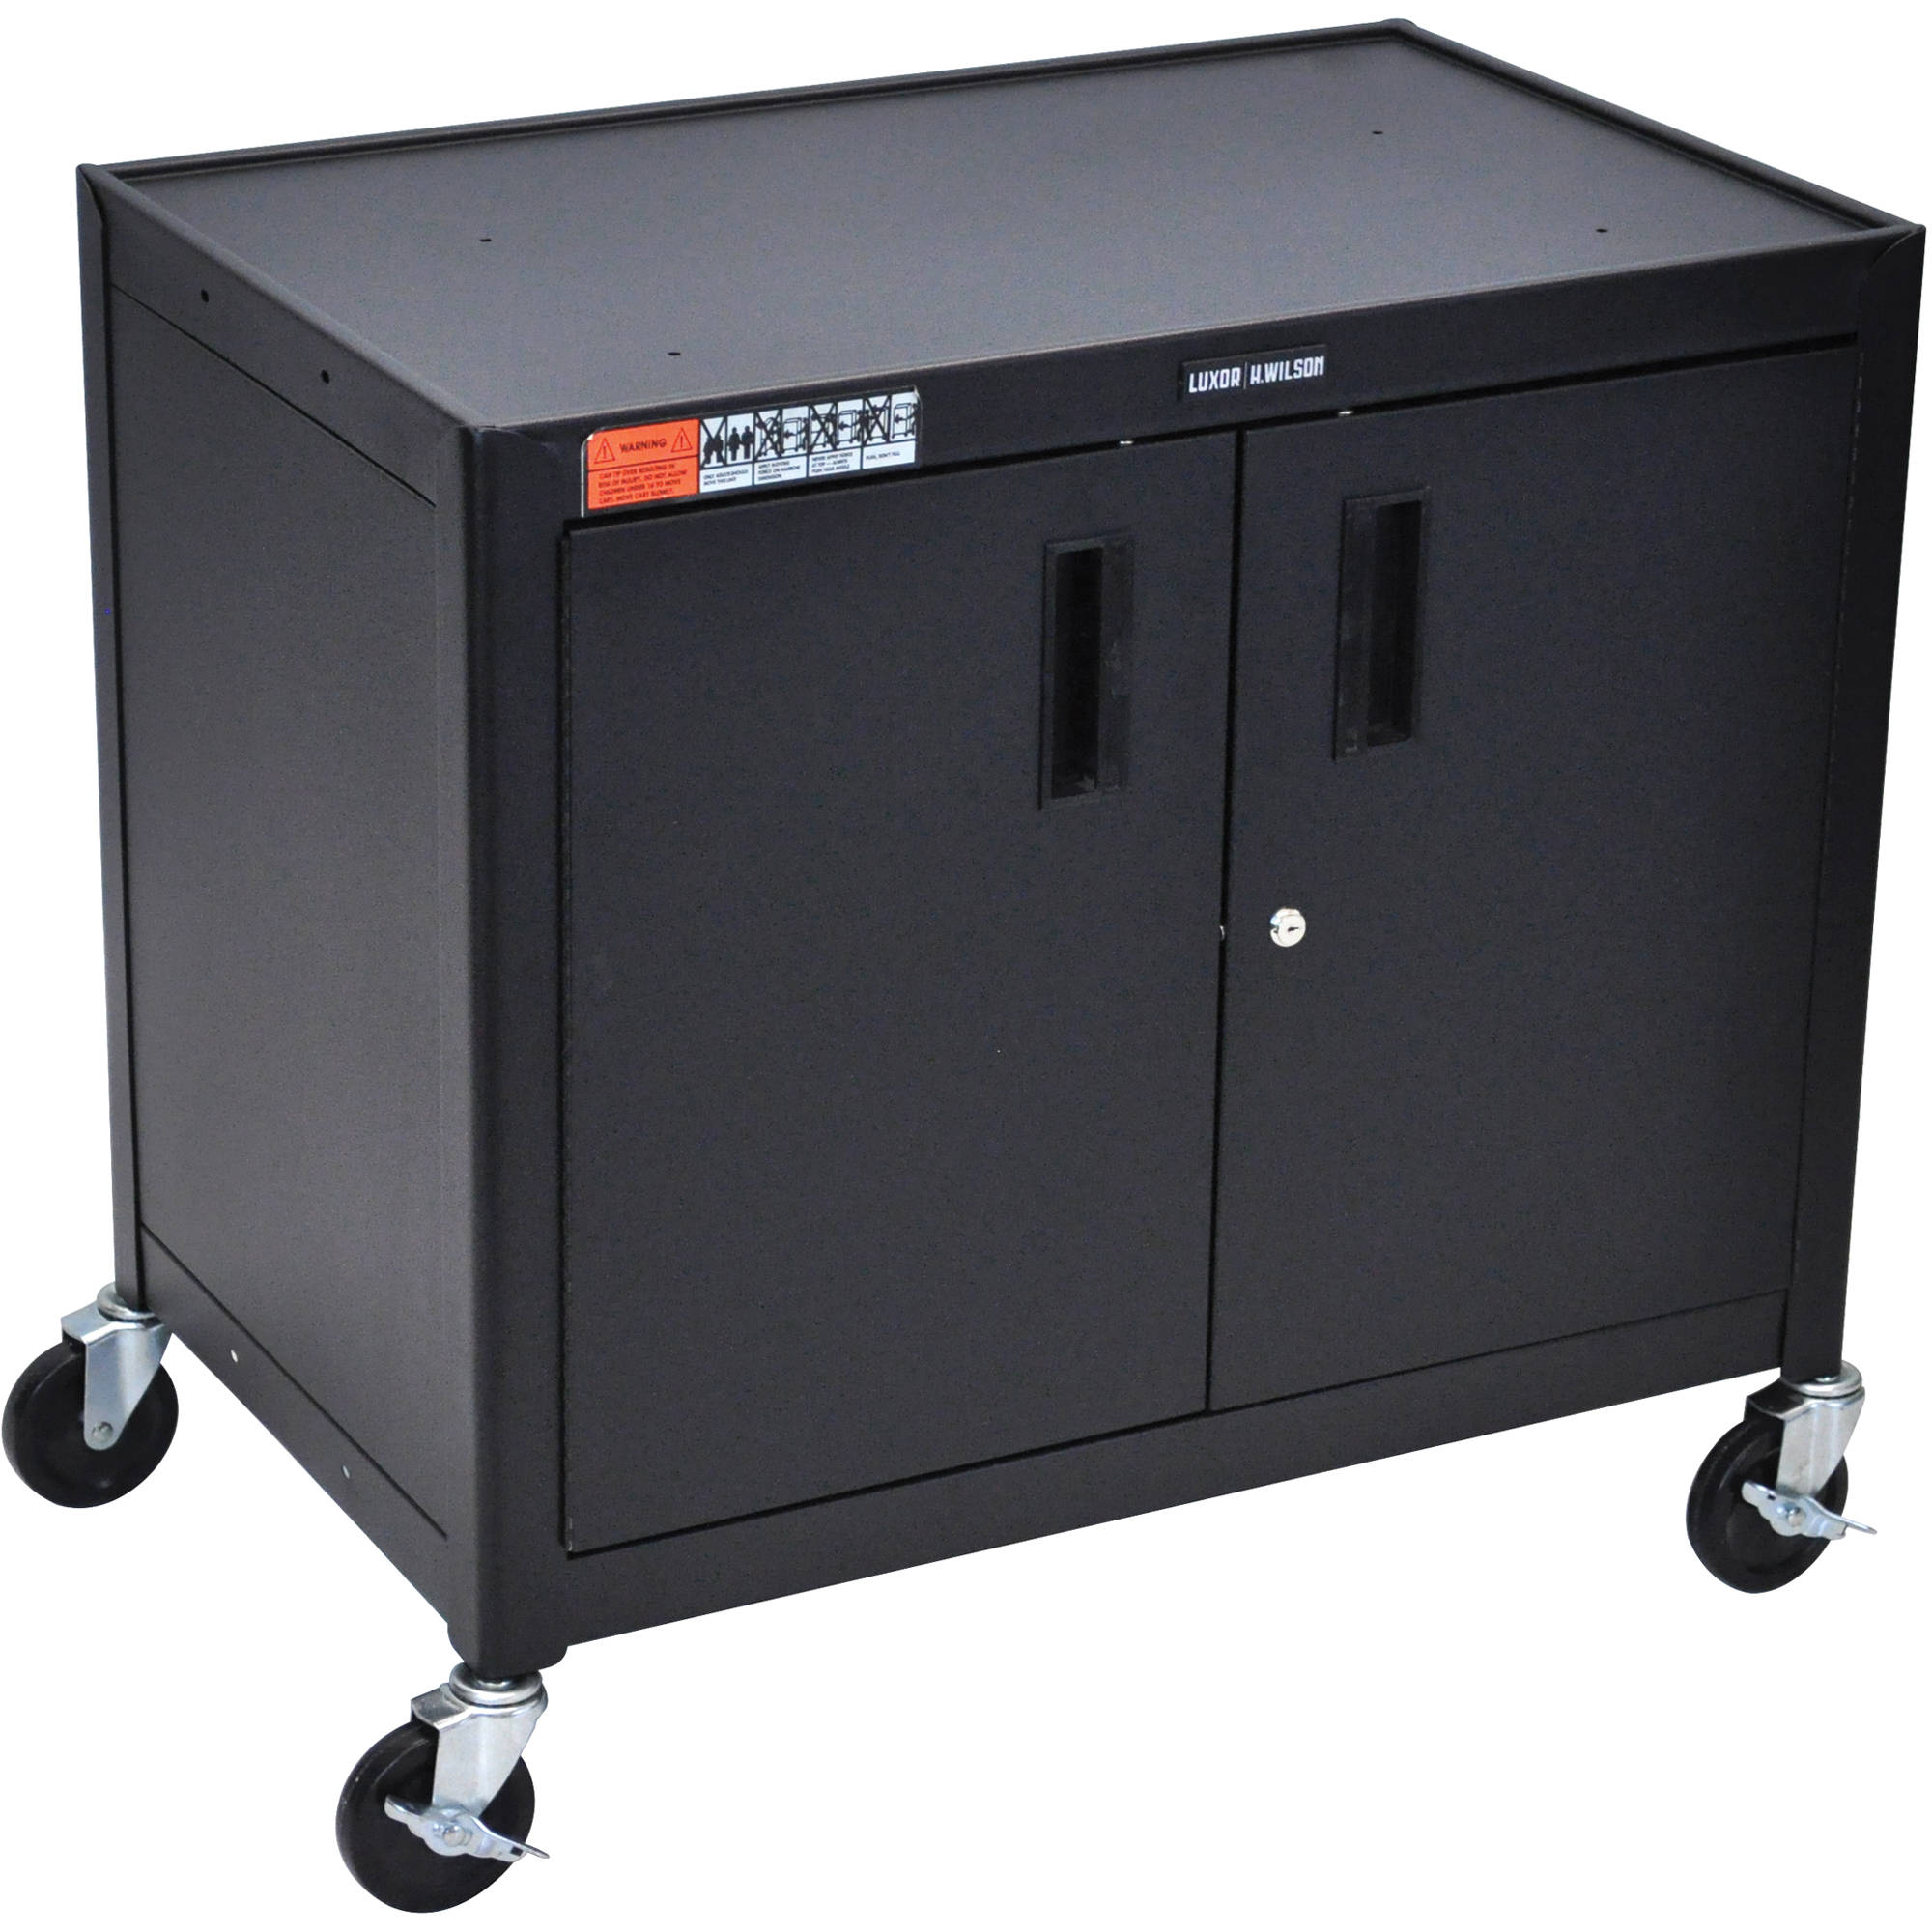 c doors for cabinet inc cabinets medical drawers mobile facilities two with and marketlab lab